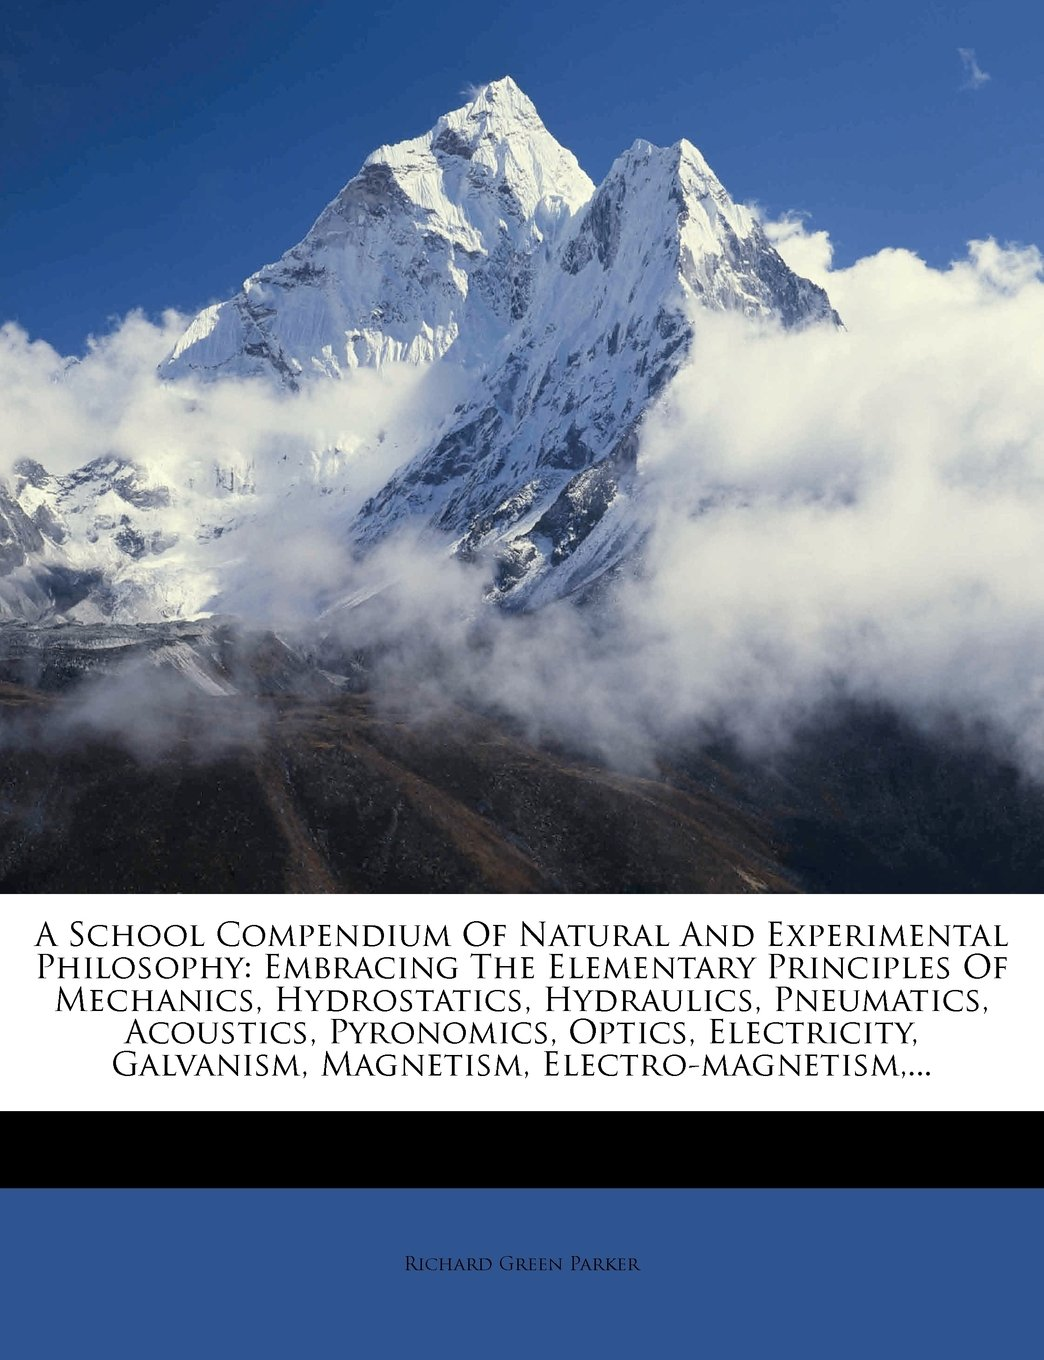 A School Compendium of Natural and Experimental Philosophy: Embracing the Elementary Principles of Mechanics, Hydrostatics, Hydraulics, Pneumatics, PDF